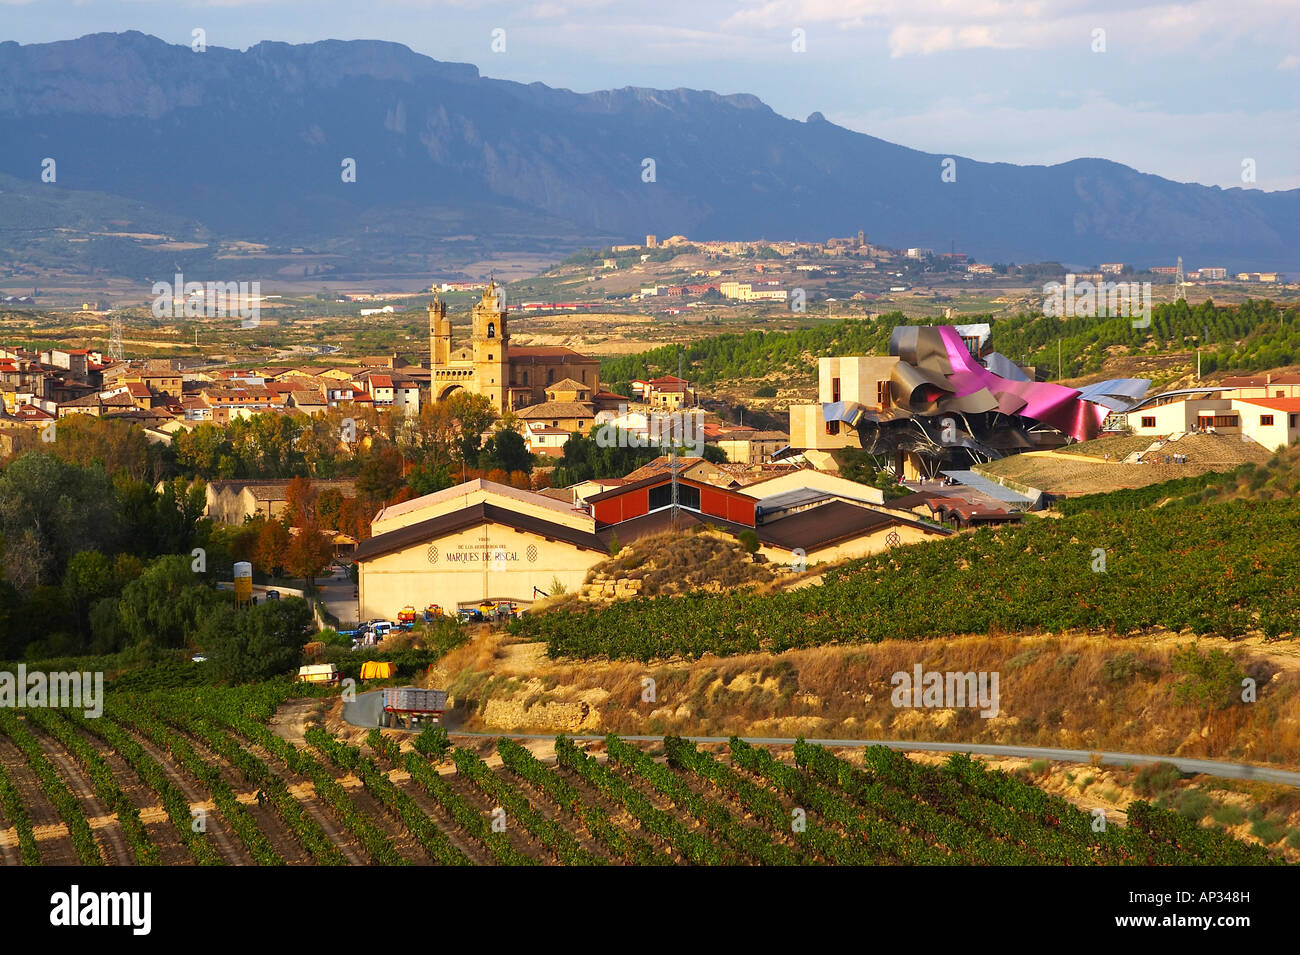 Hotel from architect frank gehry and bodegas marqu s de for Bodegas marques de riscal